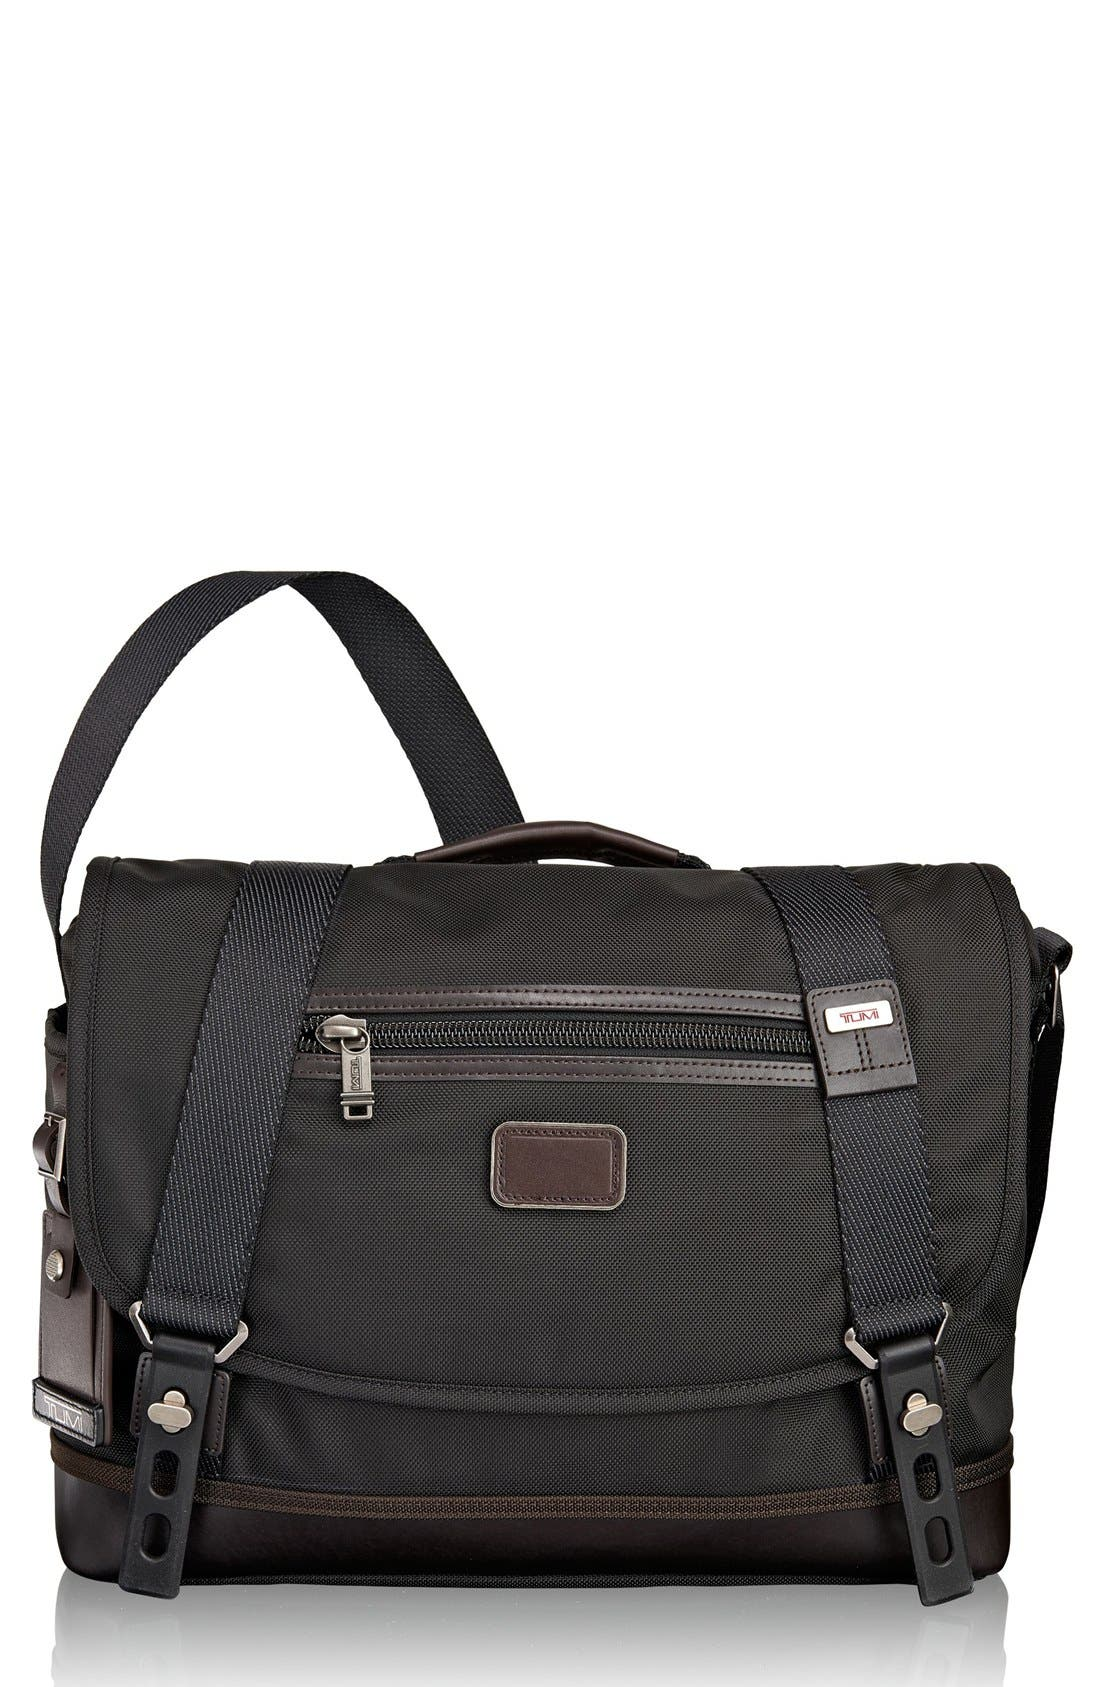 Alternate Image 1 Selected - Tumi 'Alpha Bravo - Foster' Messenger Bag